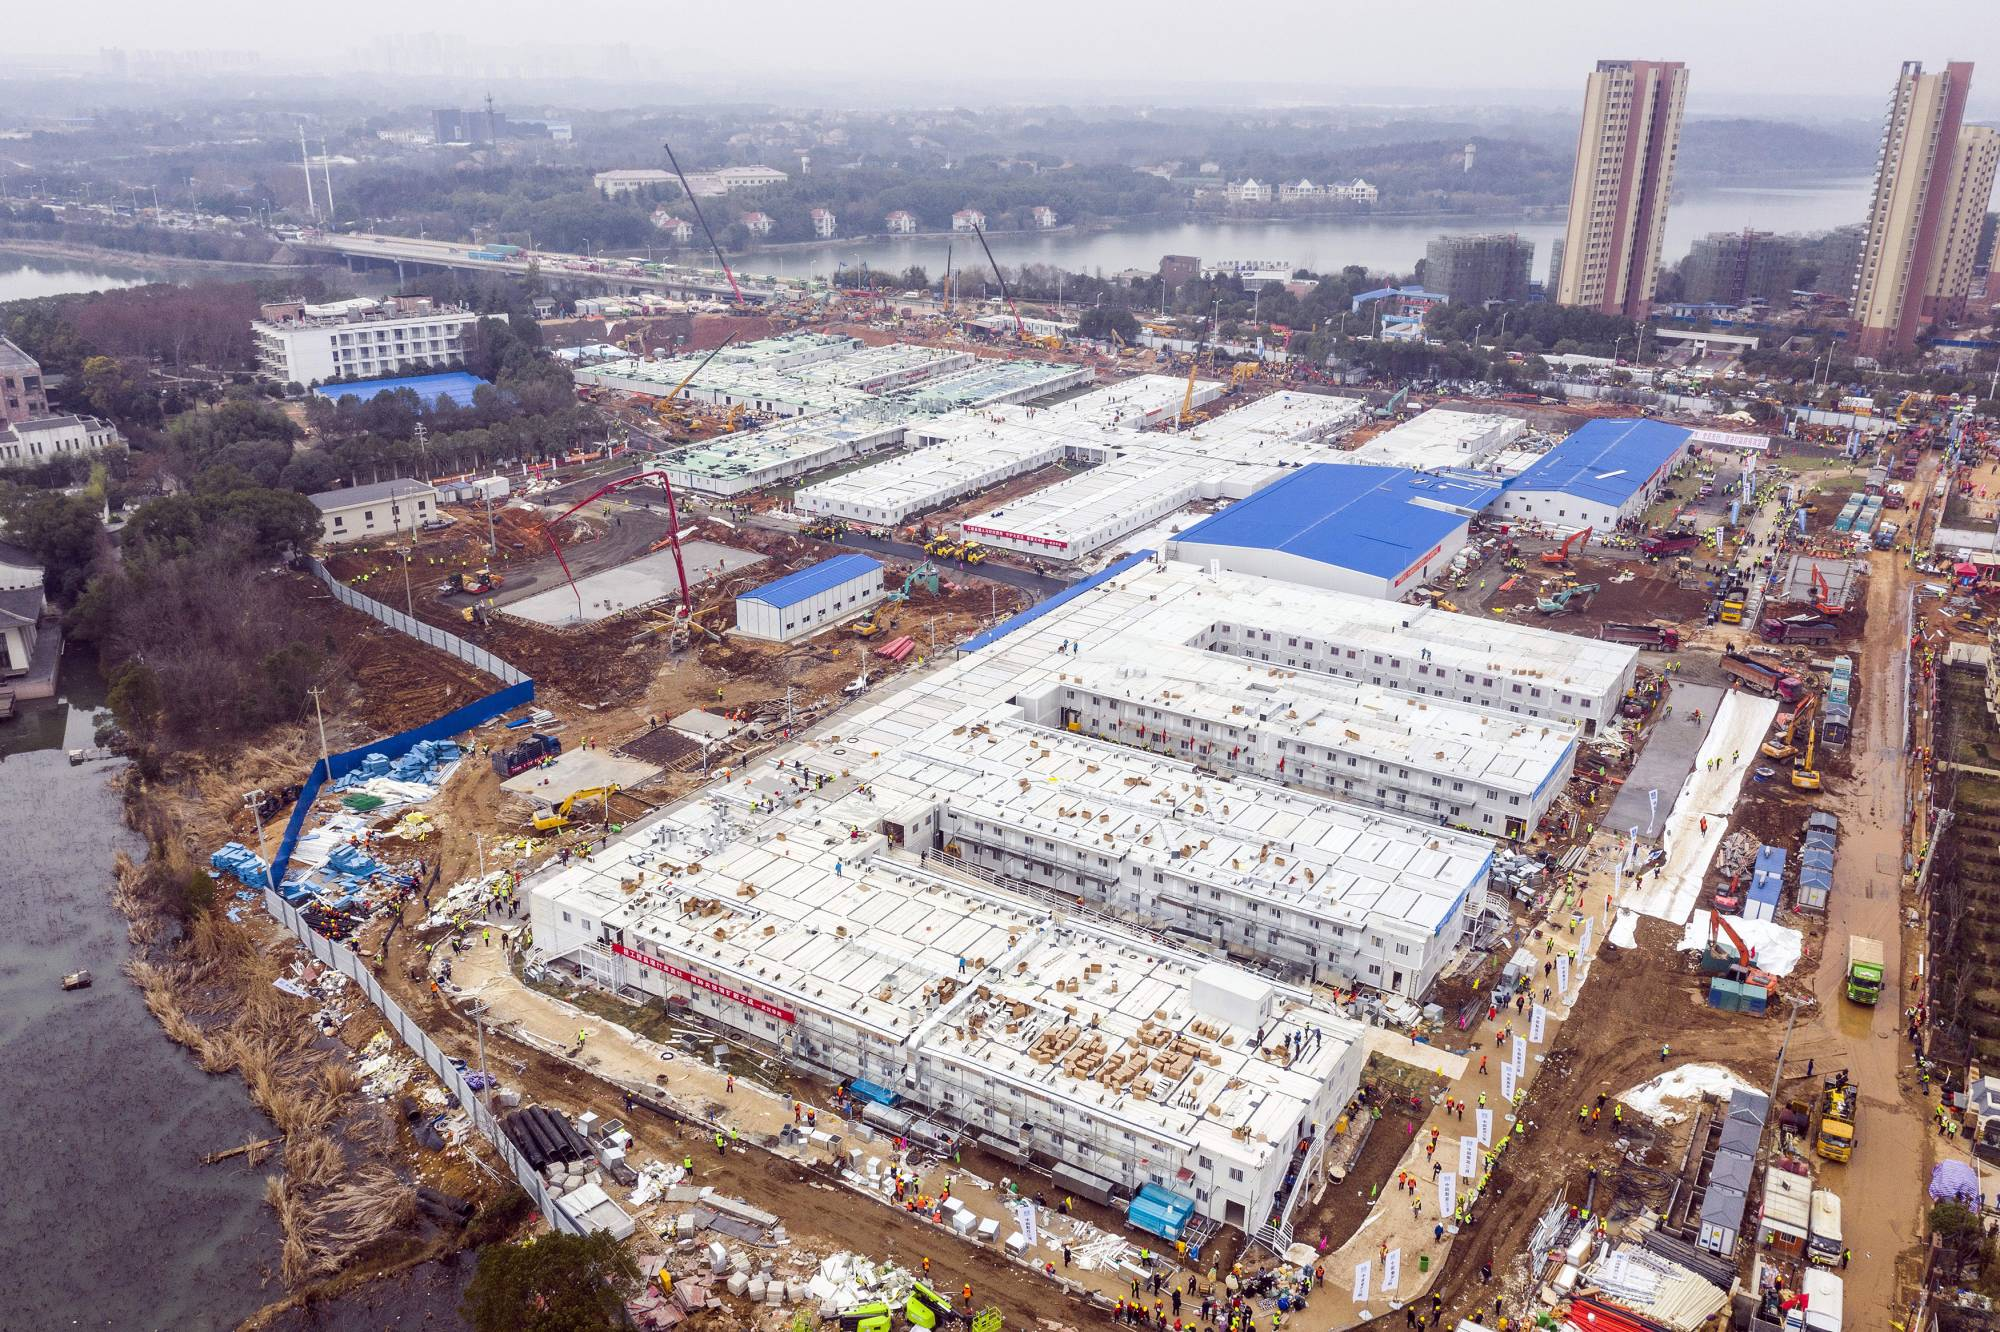 The Huoshenshan temporary field hospital nears completion in Wuhan, China, in February. | CHINATOPIX / VIA AP